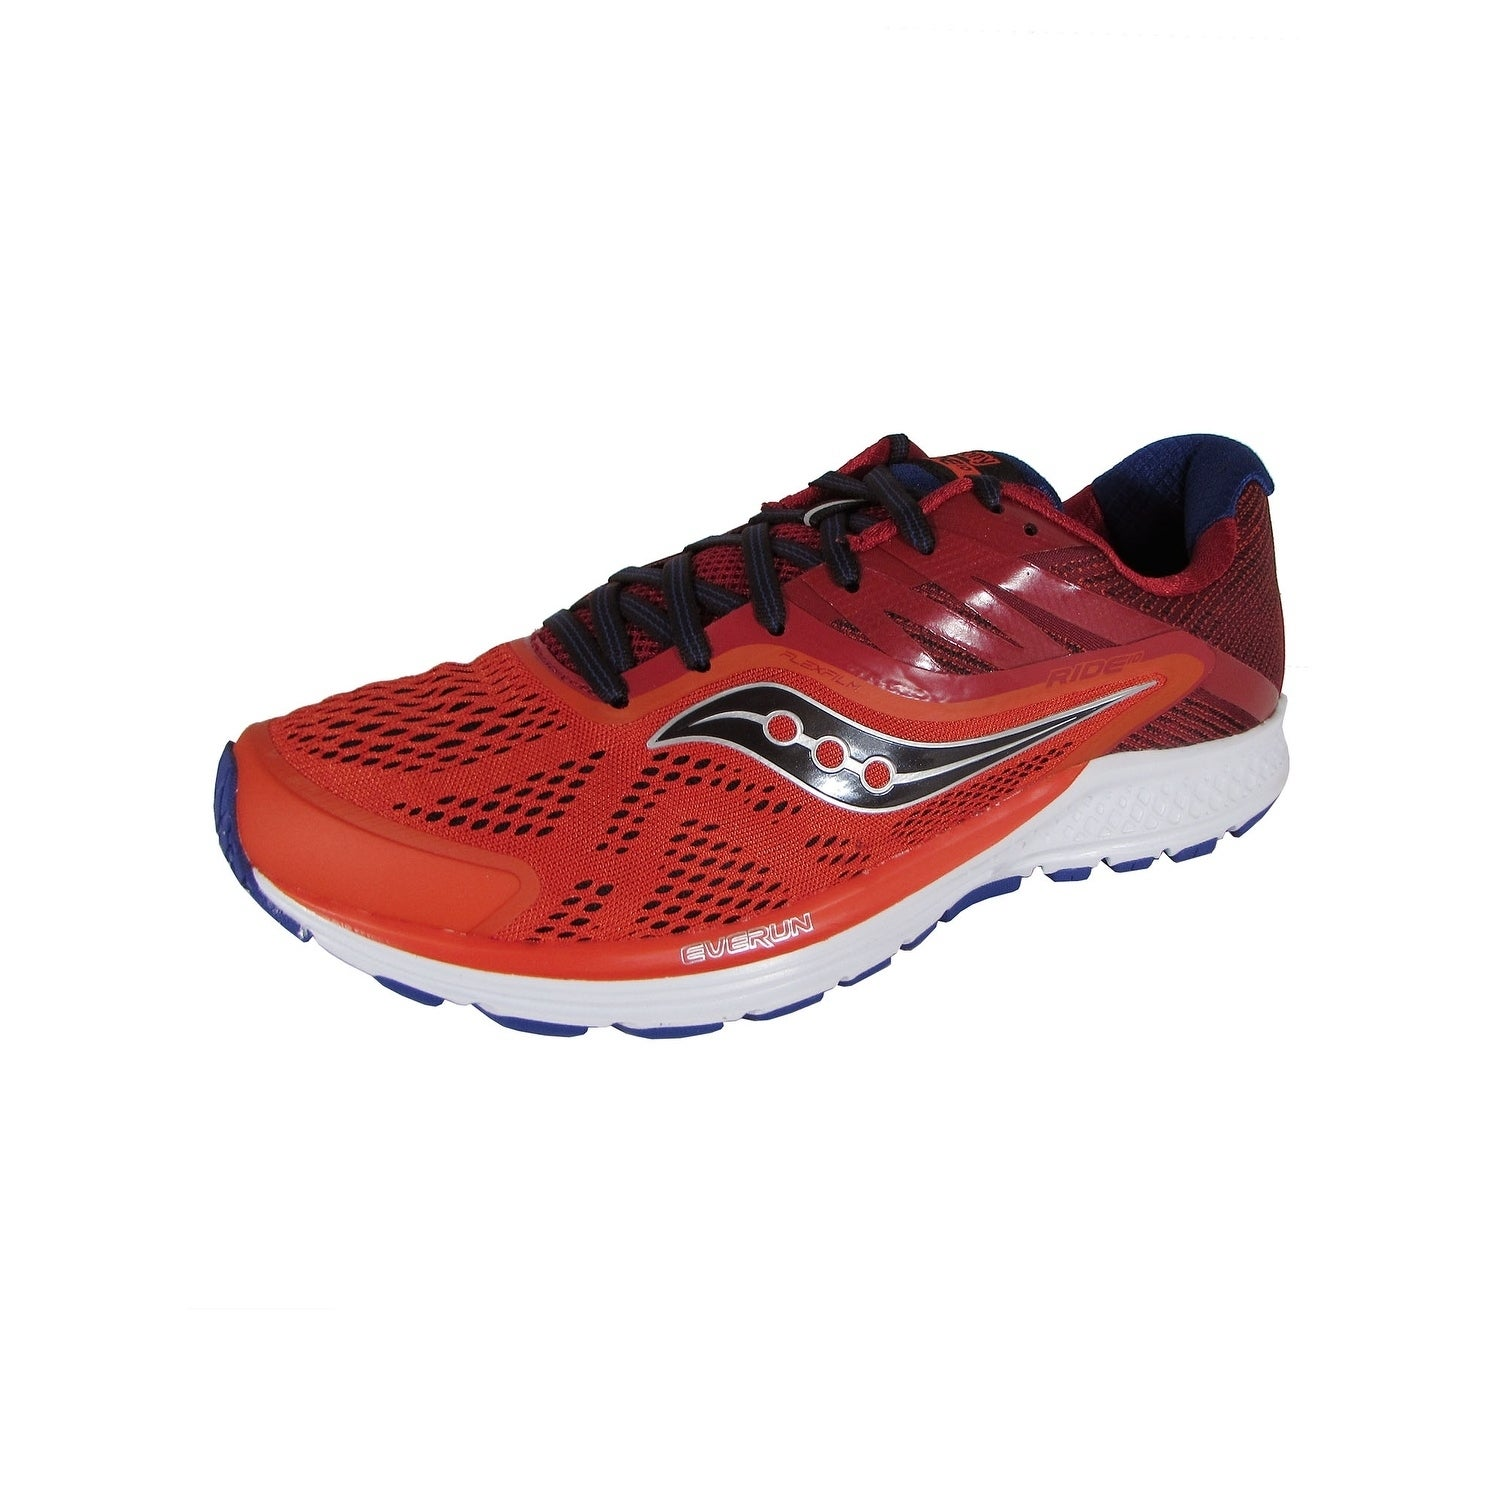 a730ae7d36f8 Shop Saucony Mens Ride 10 Running Sneaker Shoes